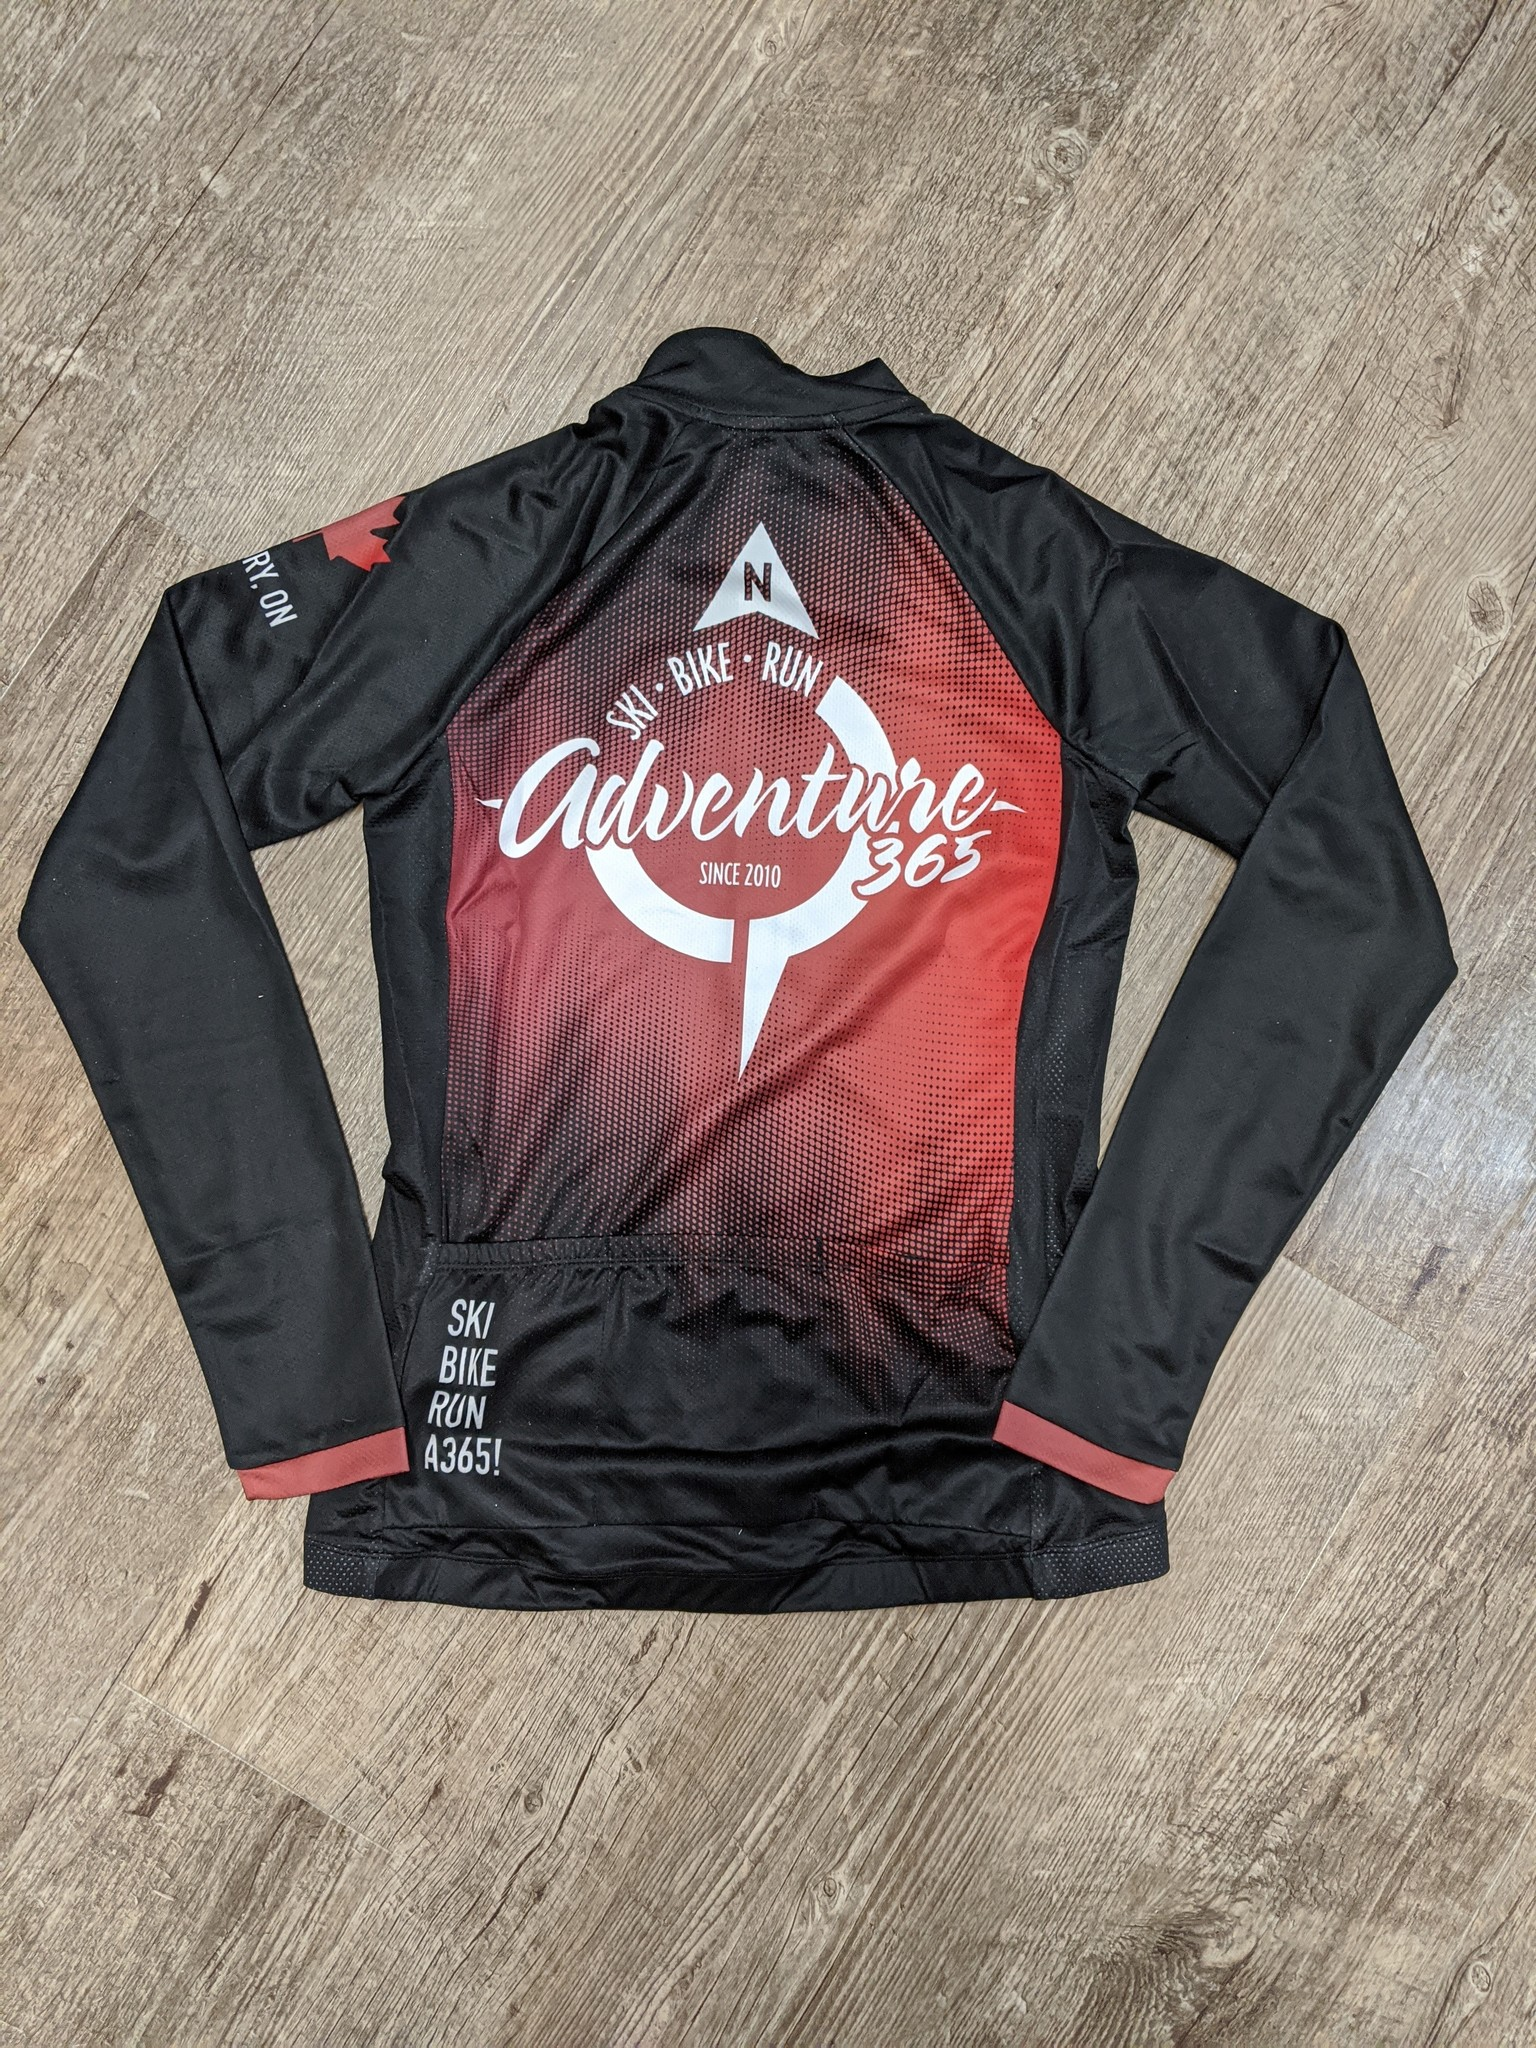 Adventure365 Women's LS Jersey